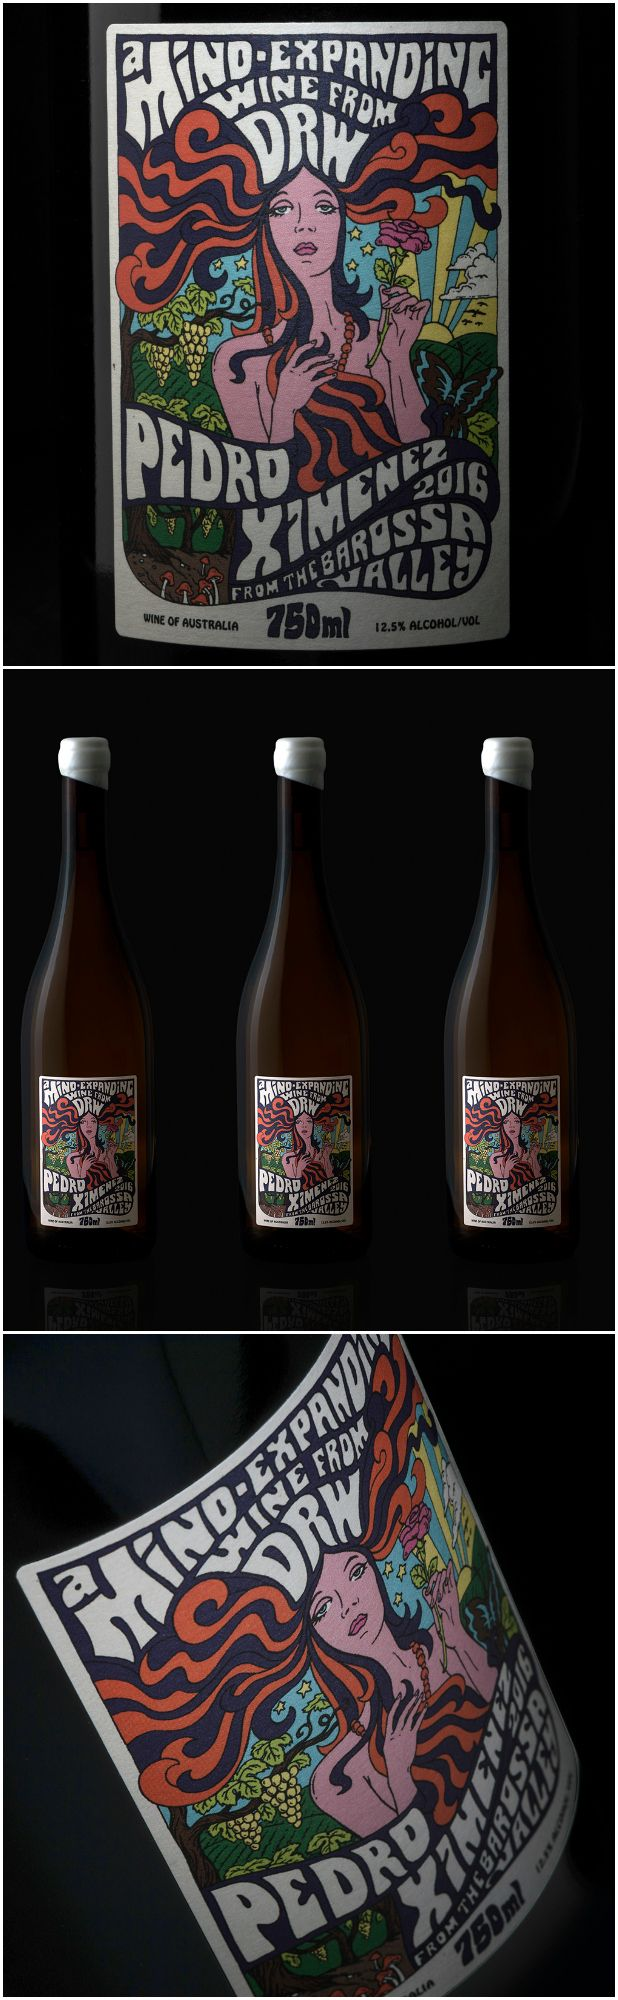 A Psychedelic Wine Label for a Boutique Wine Producer in South Australia Design Agency: Athlete Brand / Project Name: DRW Pedro Ximenez Location: Australia Category: #Wine #drinks  World Brand & Packaging Design Society